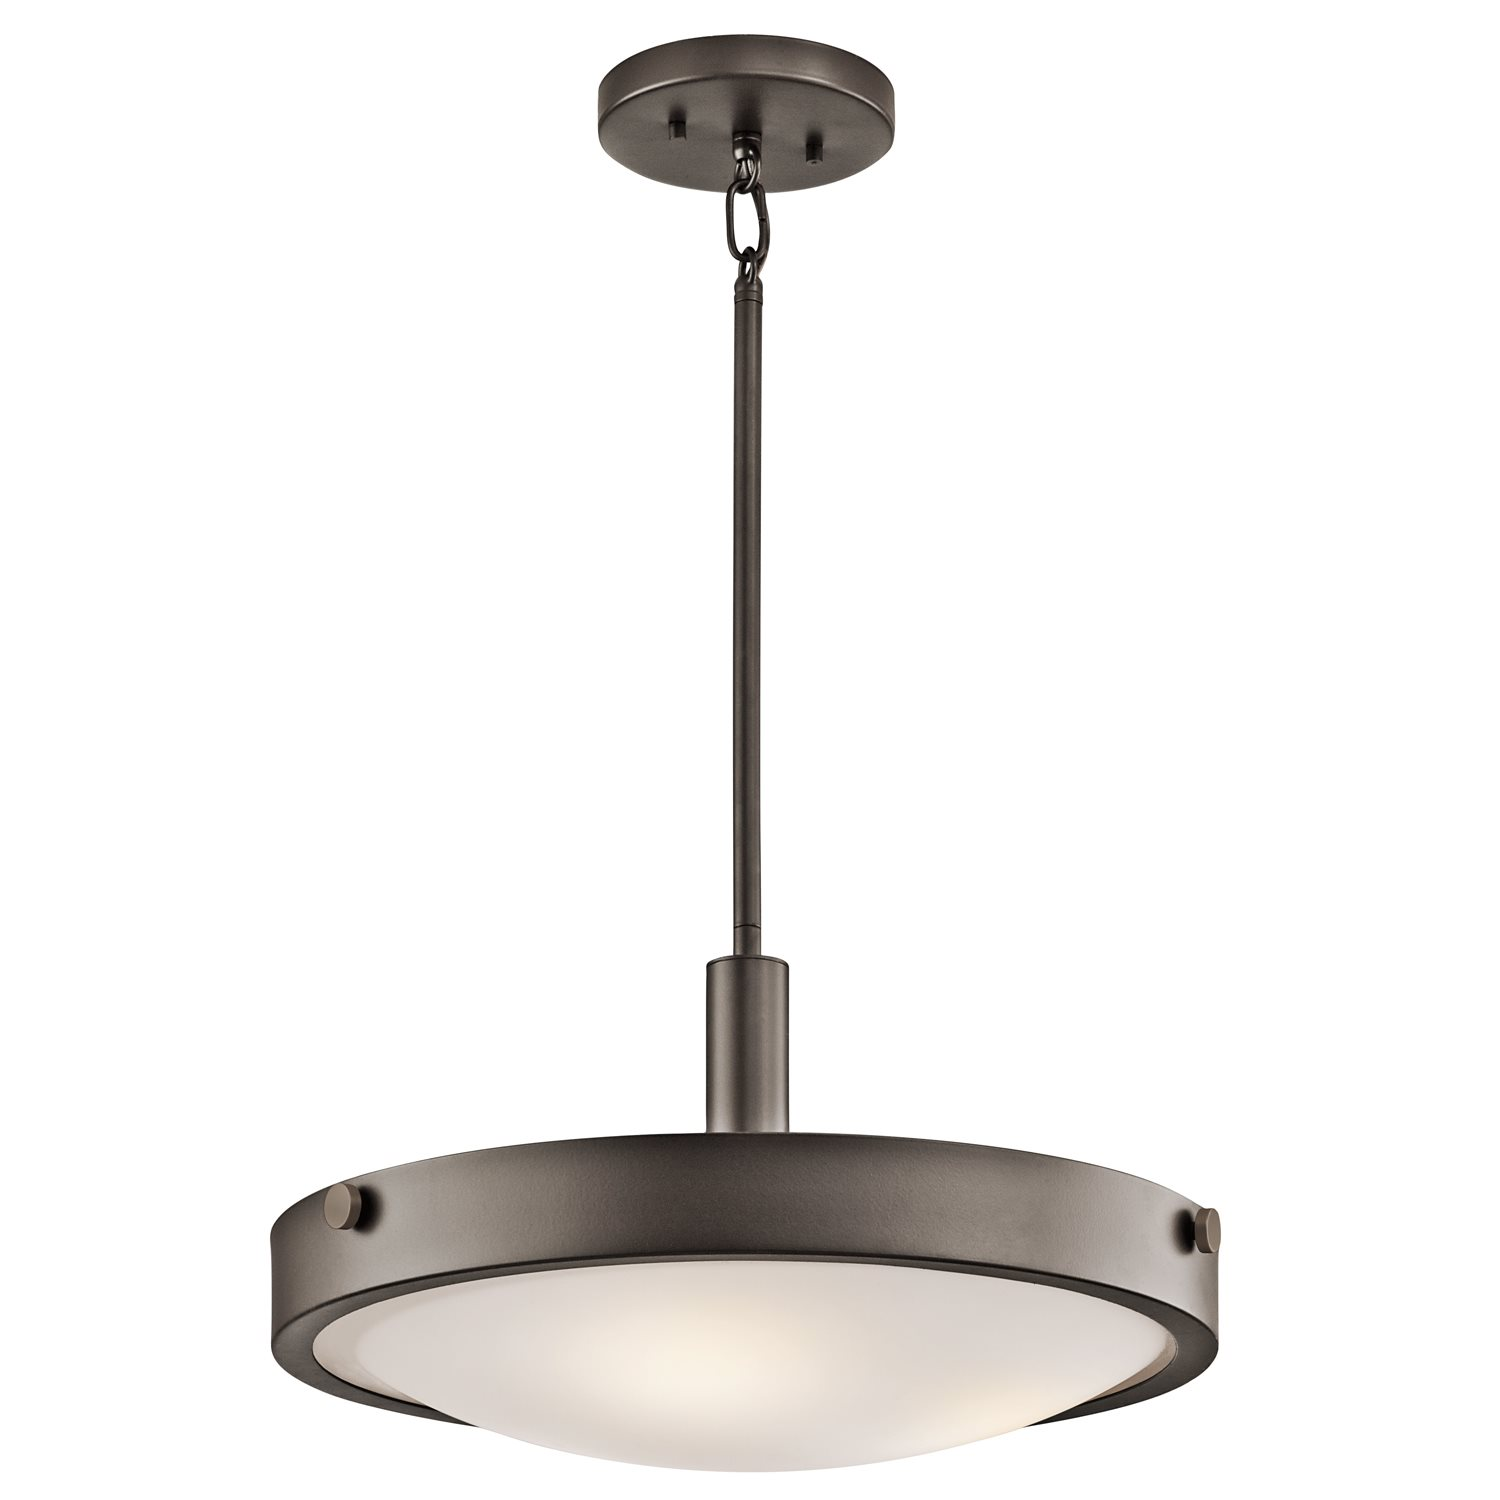 Kichler Lighting: Kichler Lighting Lytham Olde Bronze Inverted Pendant Light